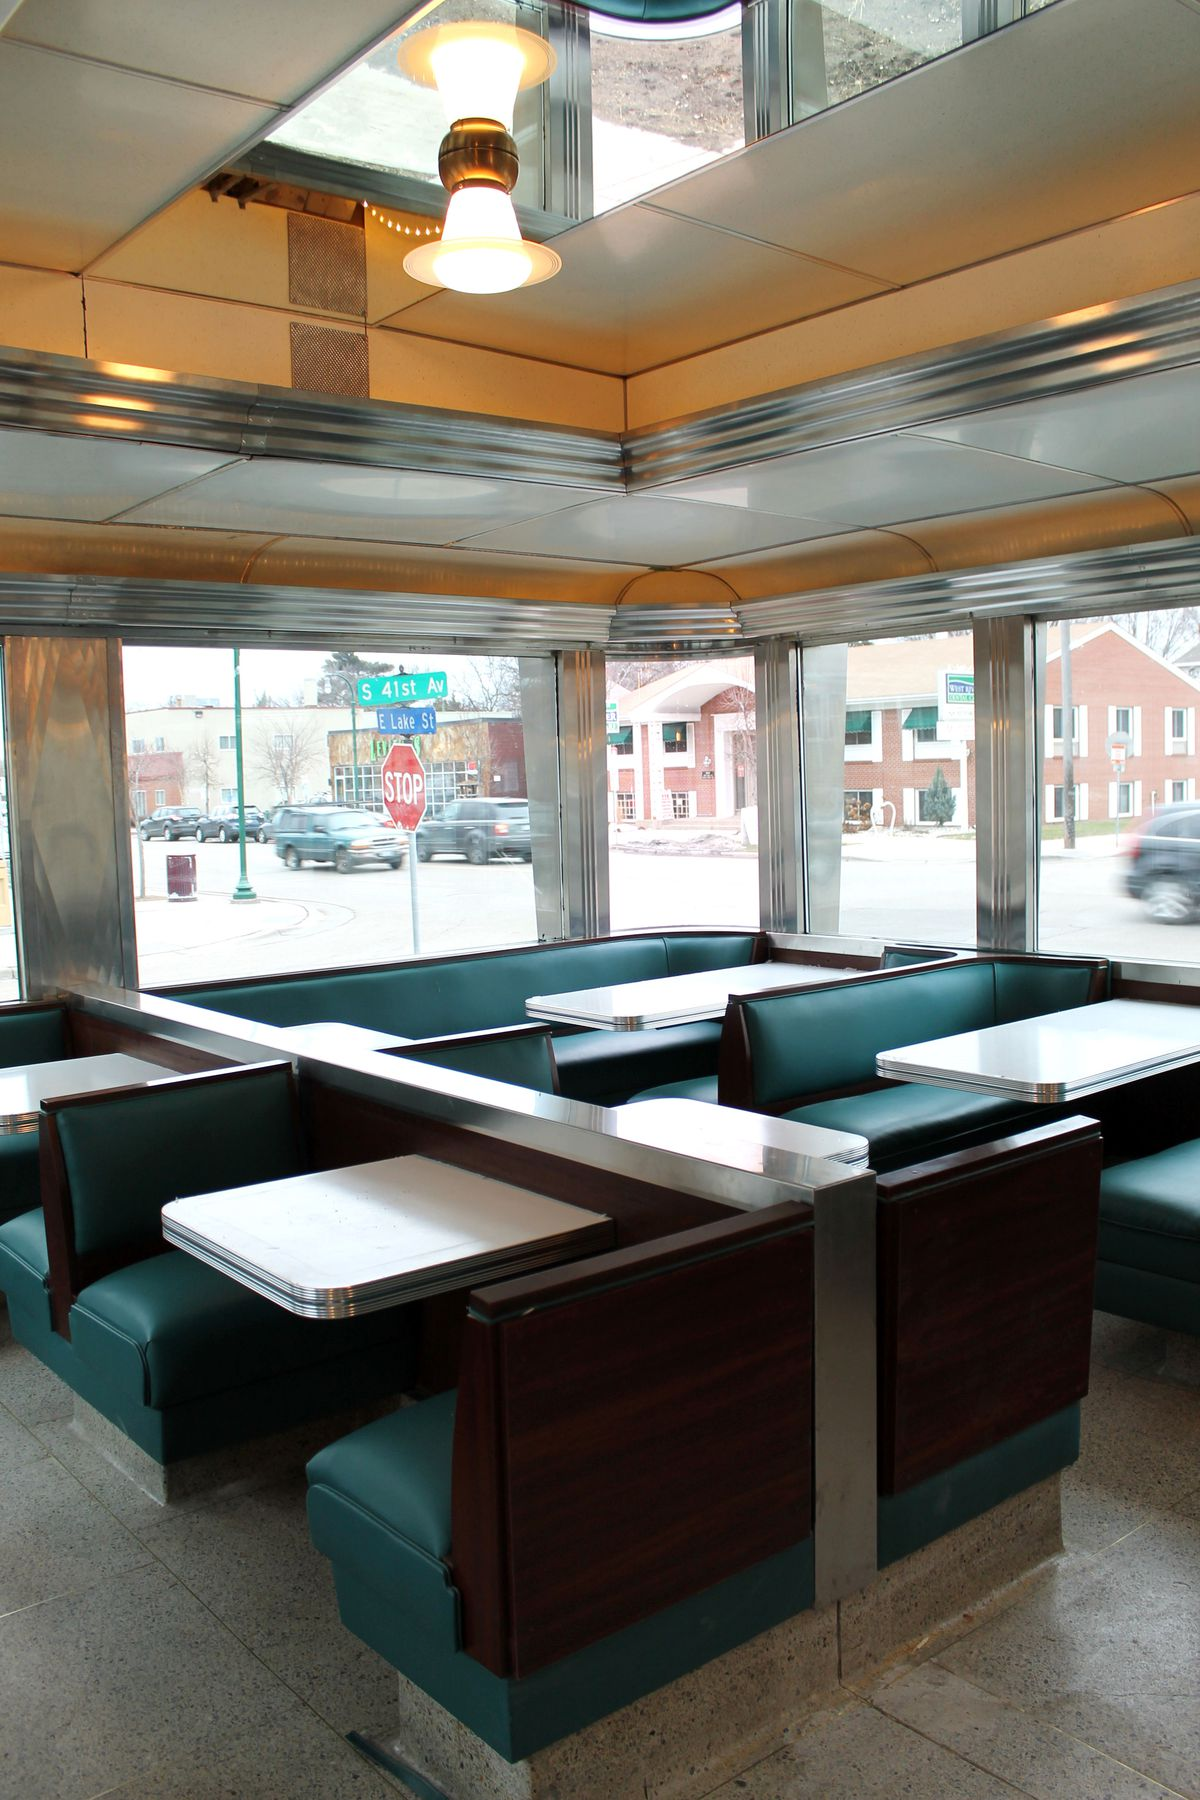 A first look inside the diner. Photo by Devan Grimsrud